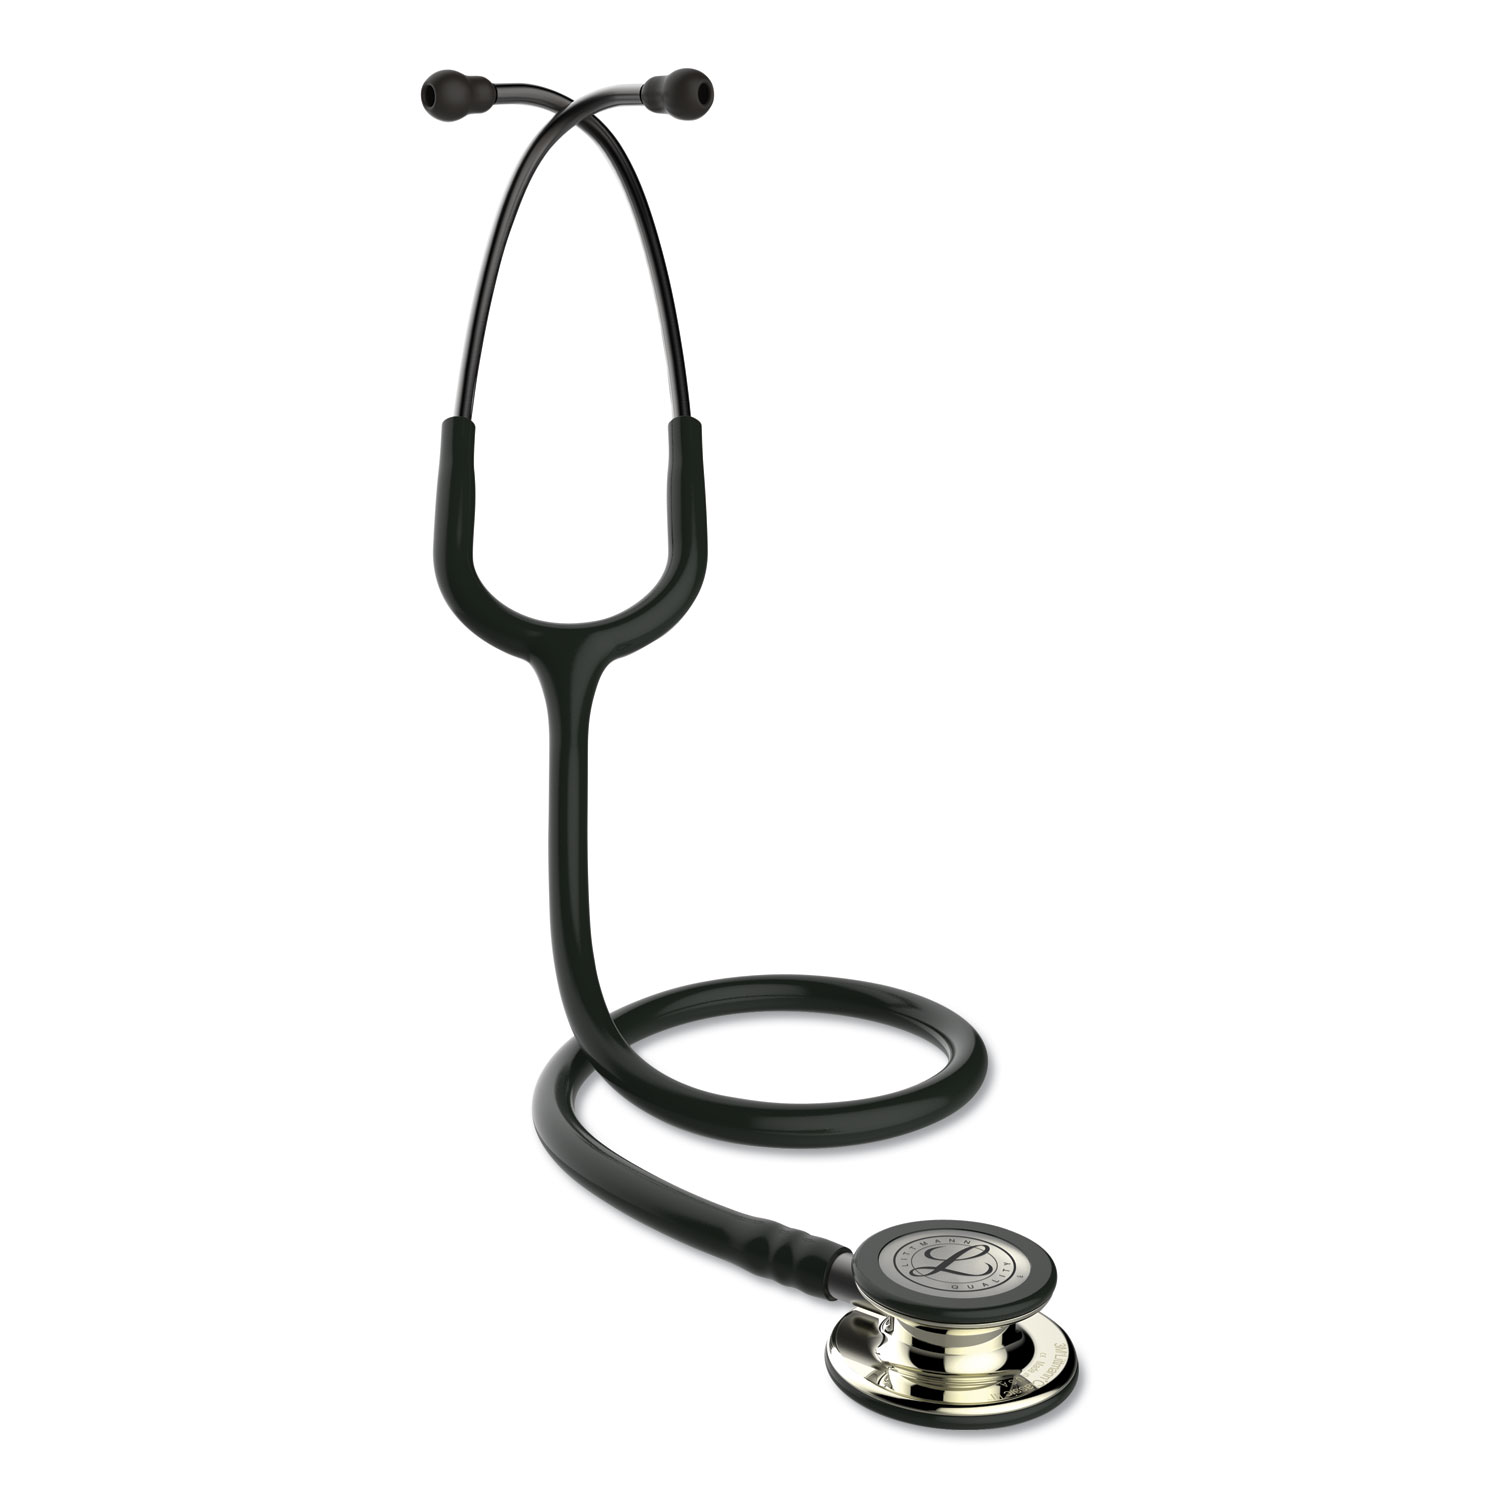 Littmann Classic III Monitoring Stethoscope, Double-Sided Chestpiece, 27